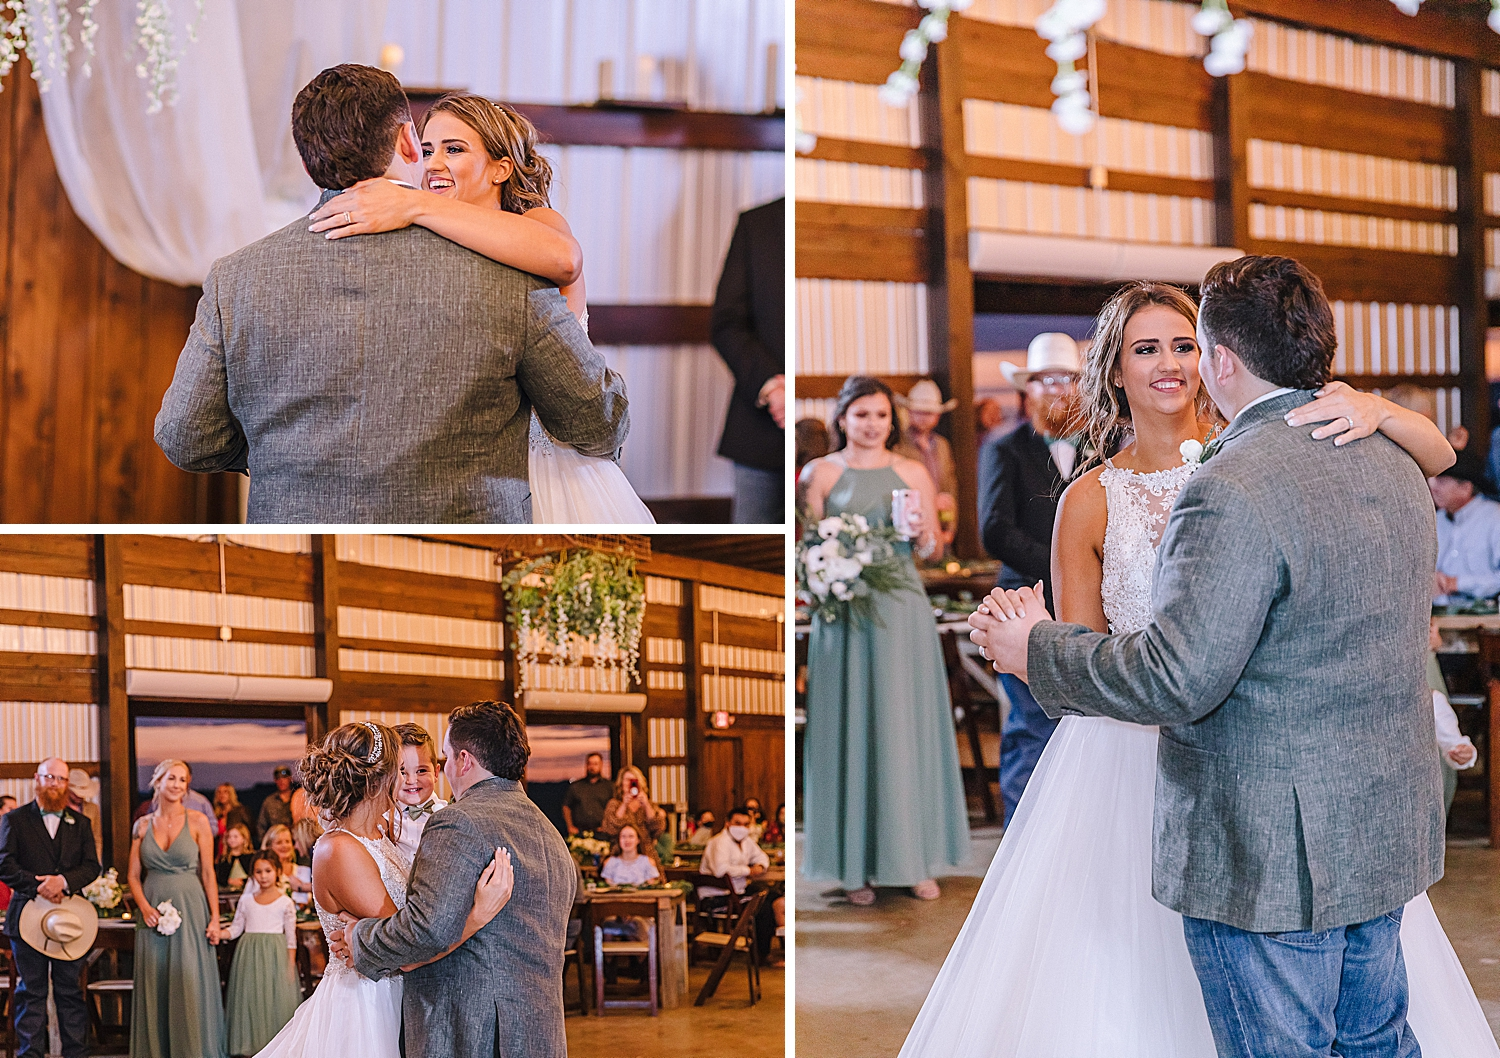 Allen-Farmhaus-New-Braunfels-Wedding-Carly-Barton-Photography_0108.jpg